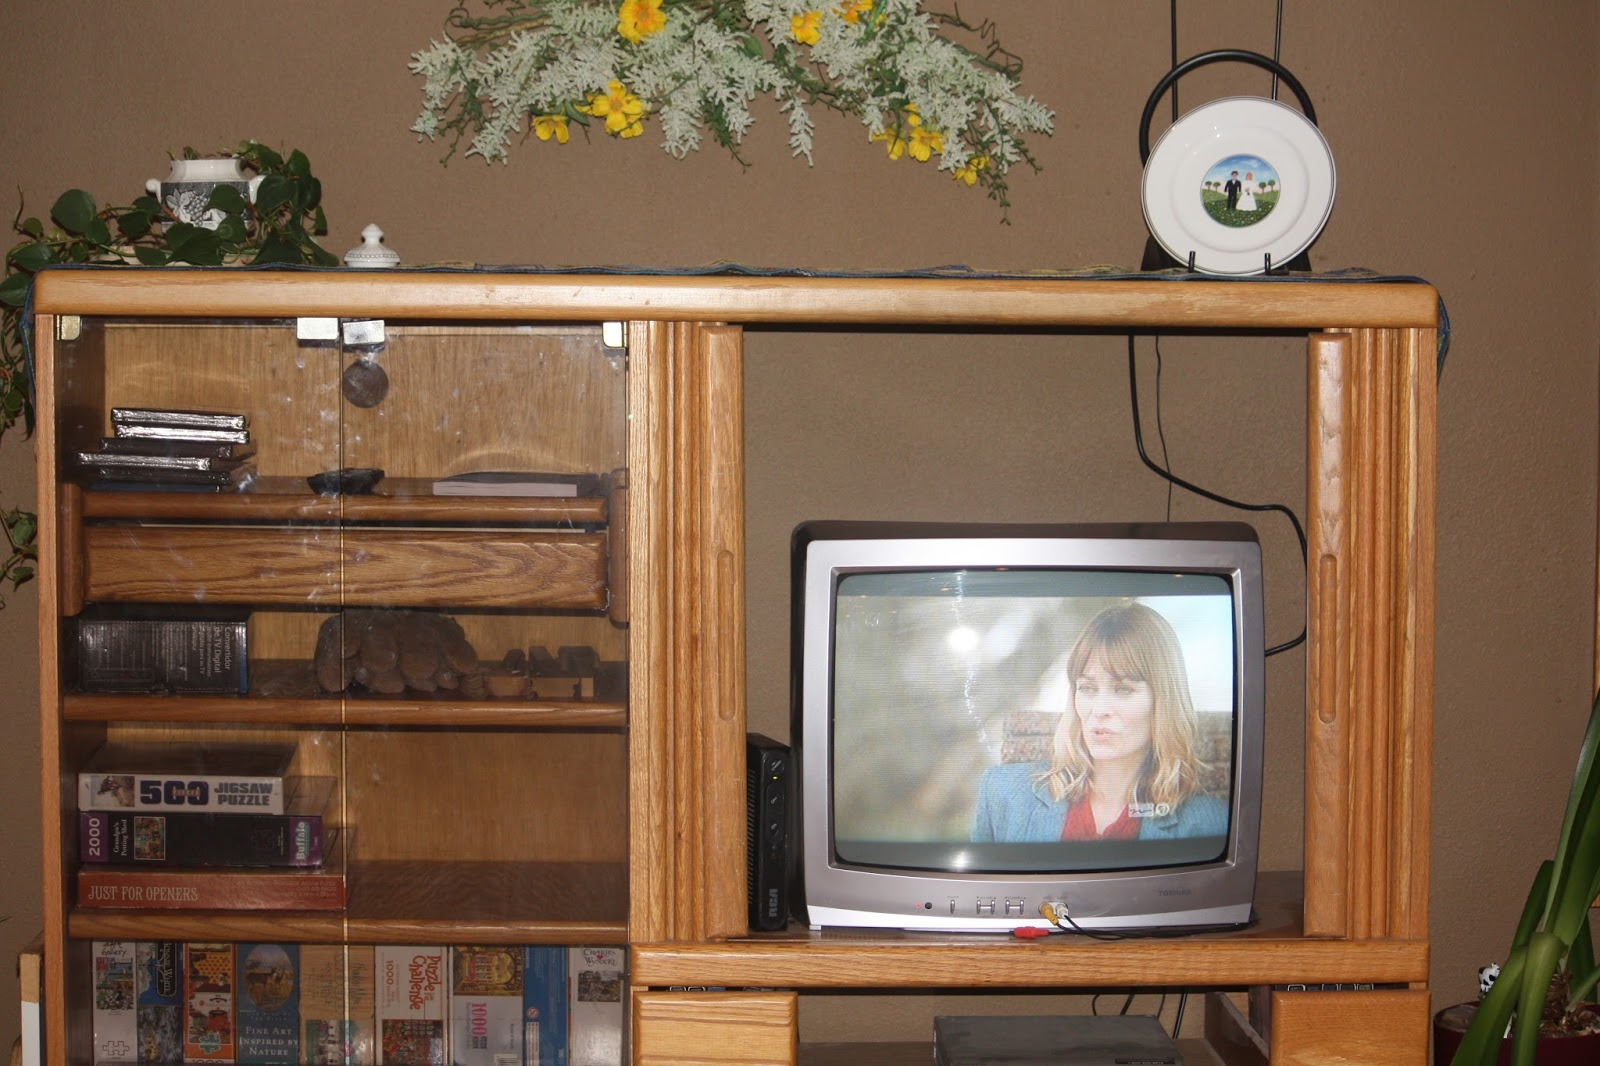 I Bought This Entertainment Center From Bucku0027s Unpainted Furniture When I  Moved To The Big City Back In The 80u0027s. Itu0027s Moved Along W/ Me From Place  To Place ...